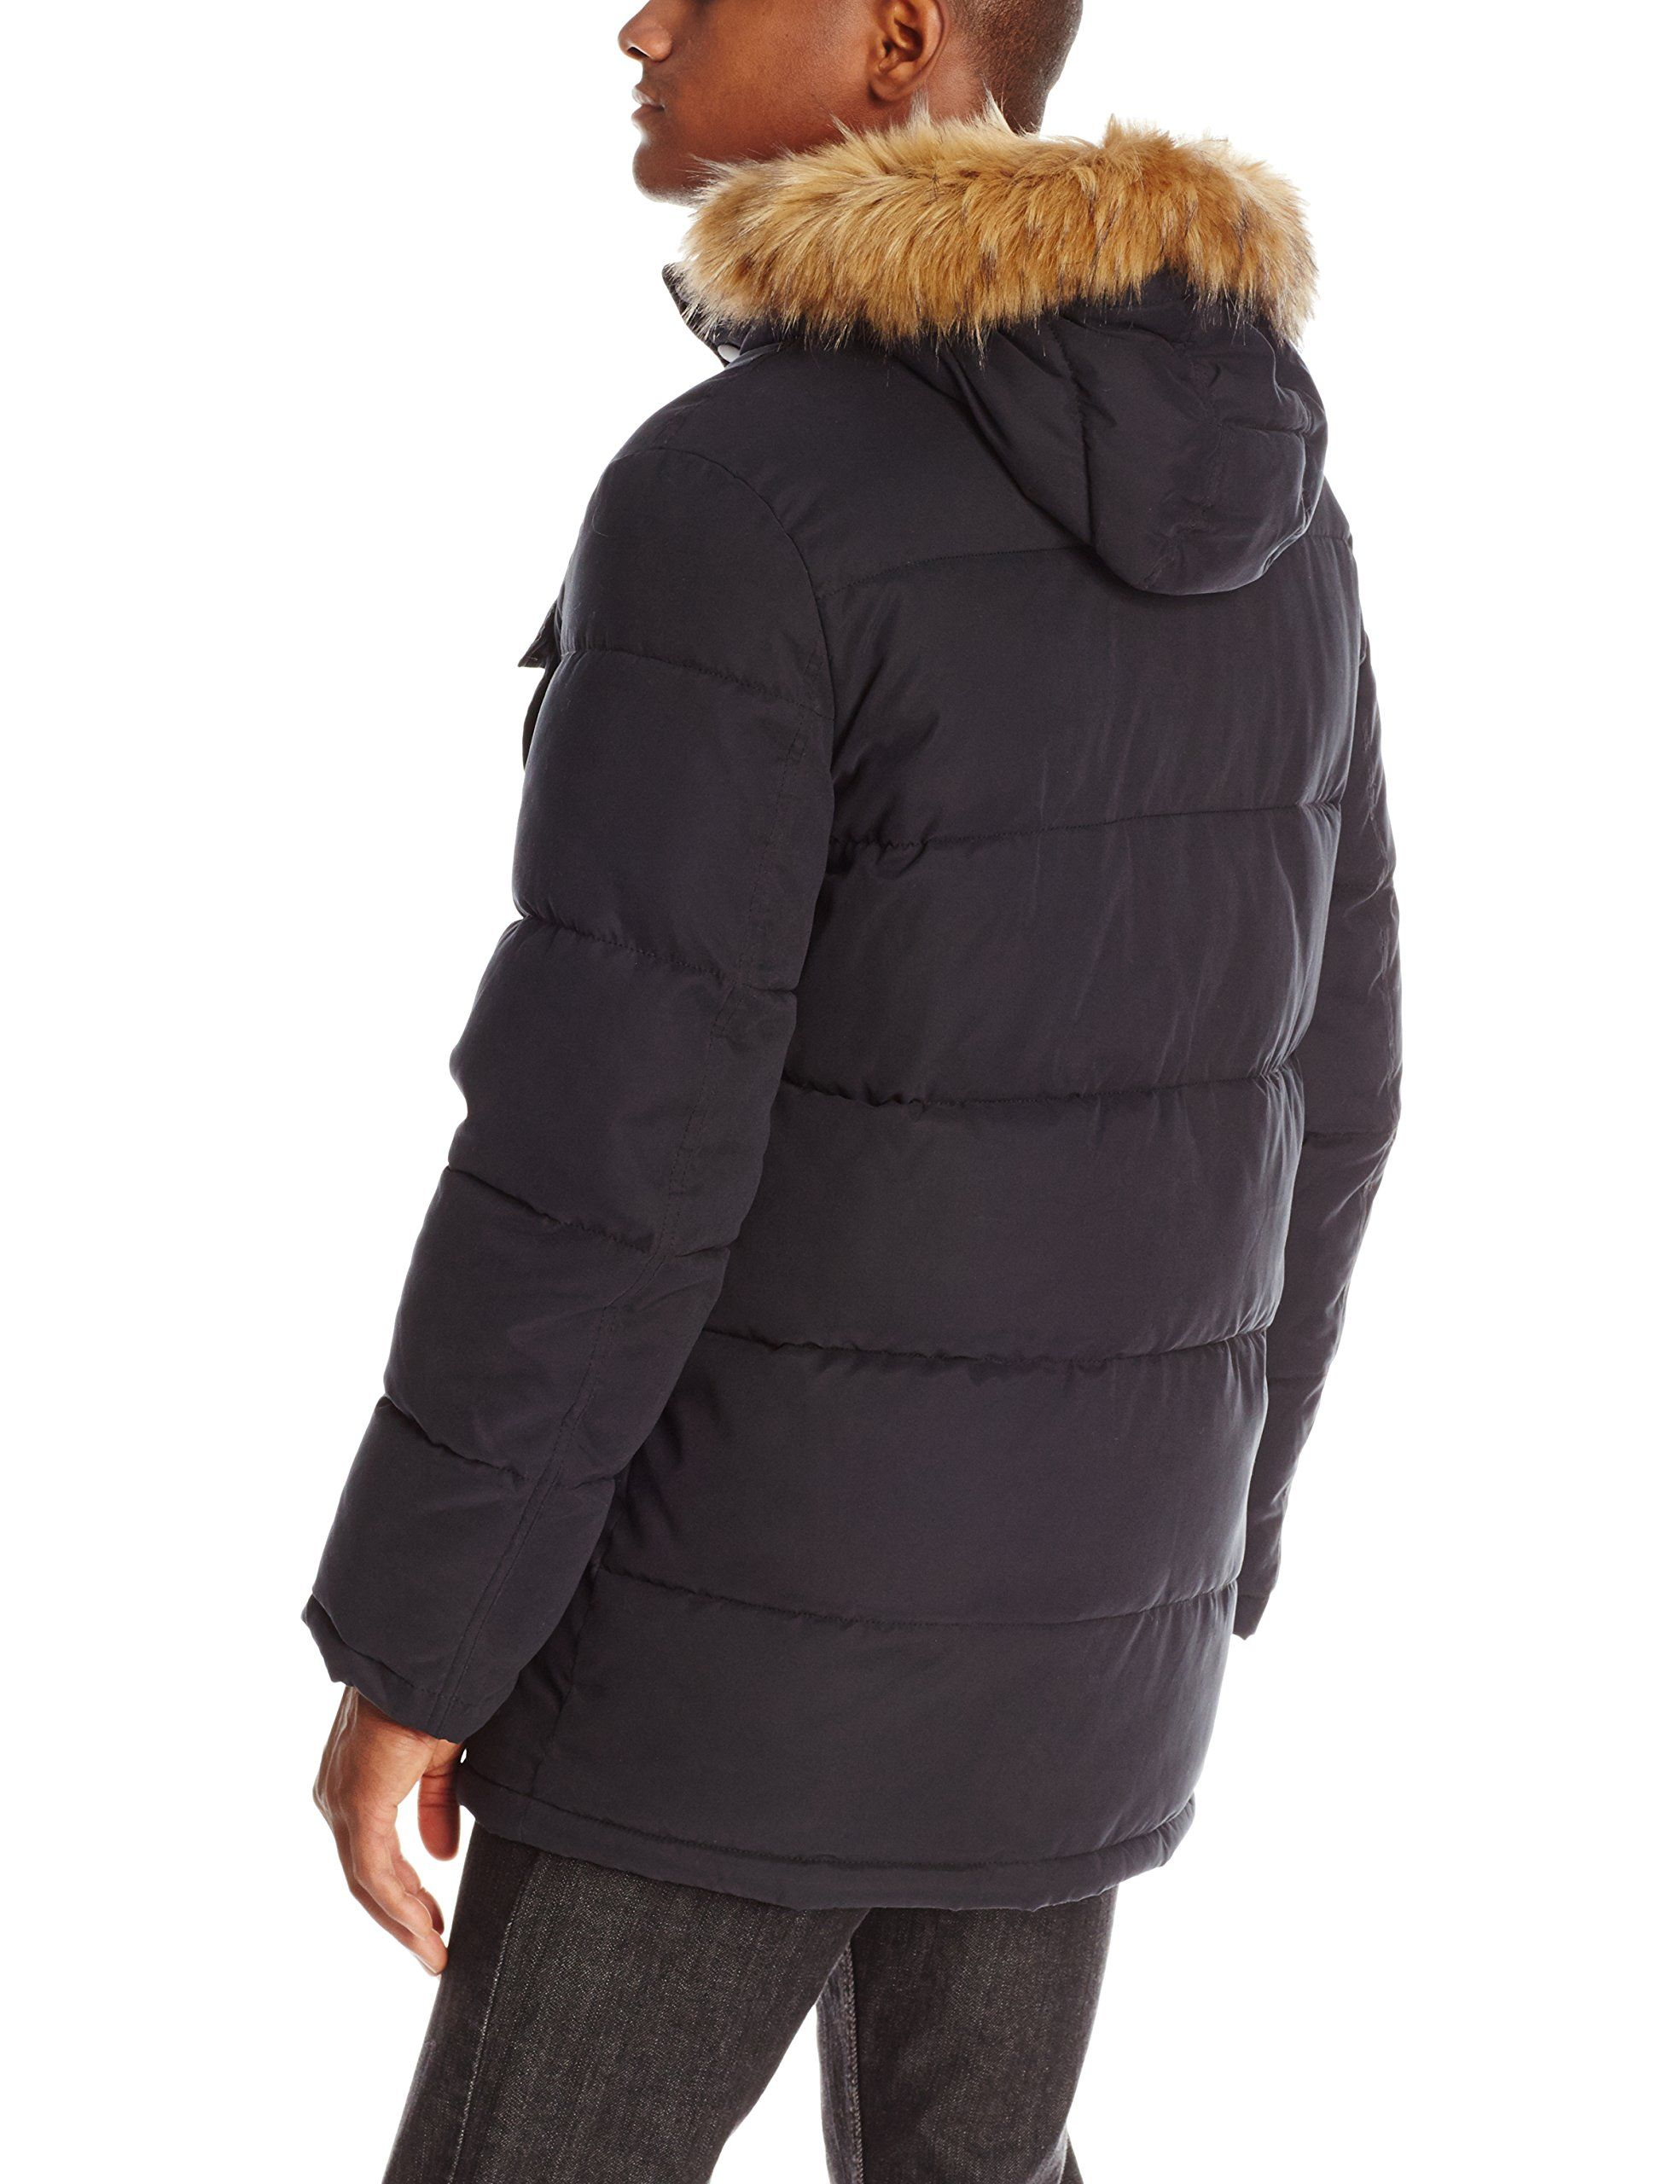 77c50e0dae0 Tommy Hilfiger Mens Micro Twill FullLength Hooded Parka Coat Black Small **  Find out more about the great product at the image link.